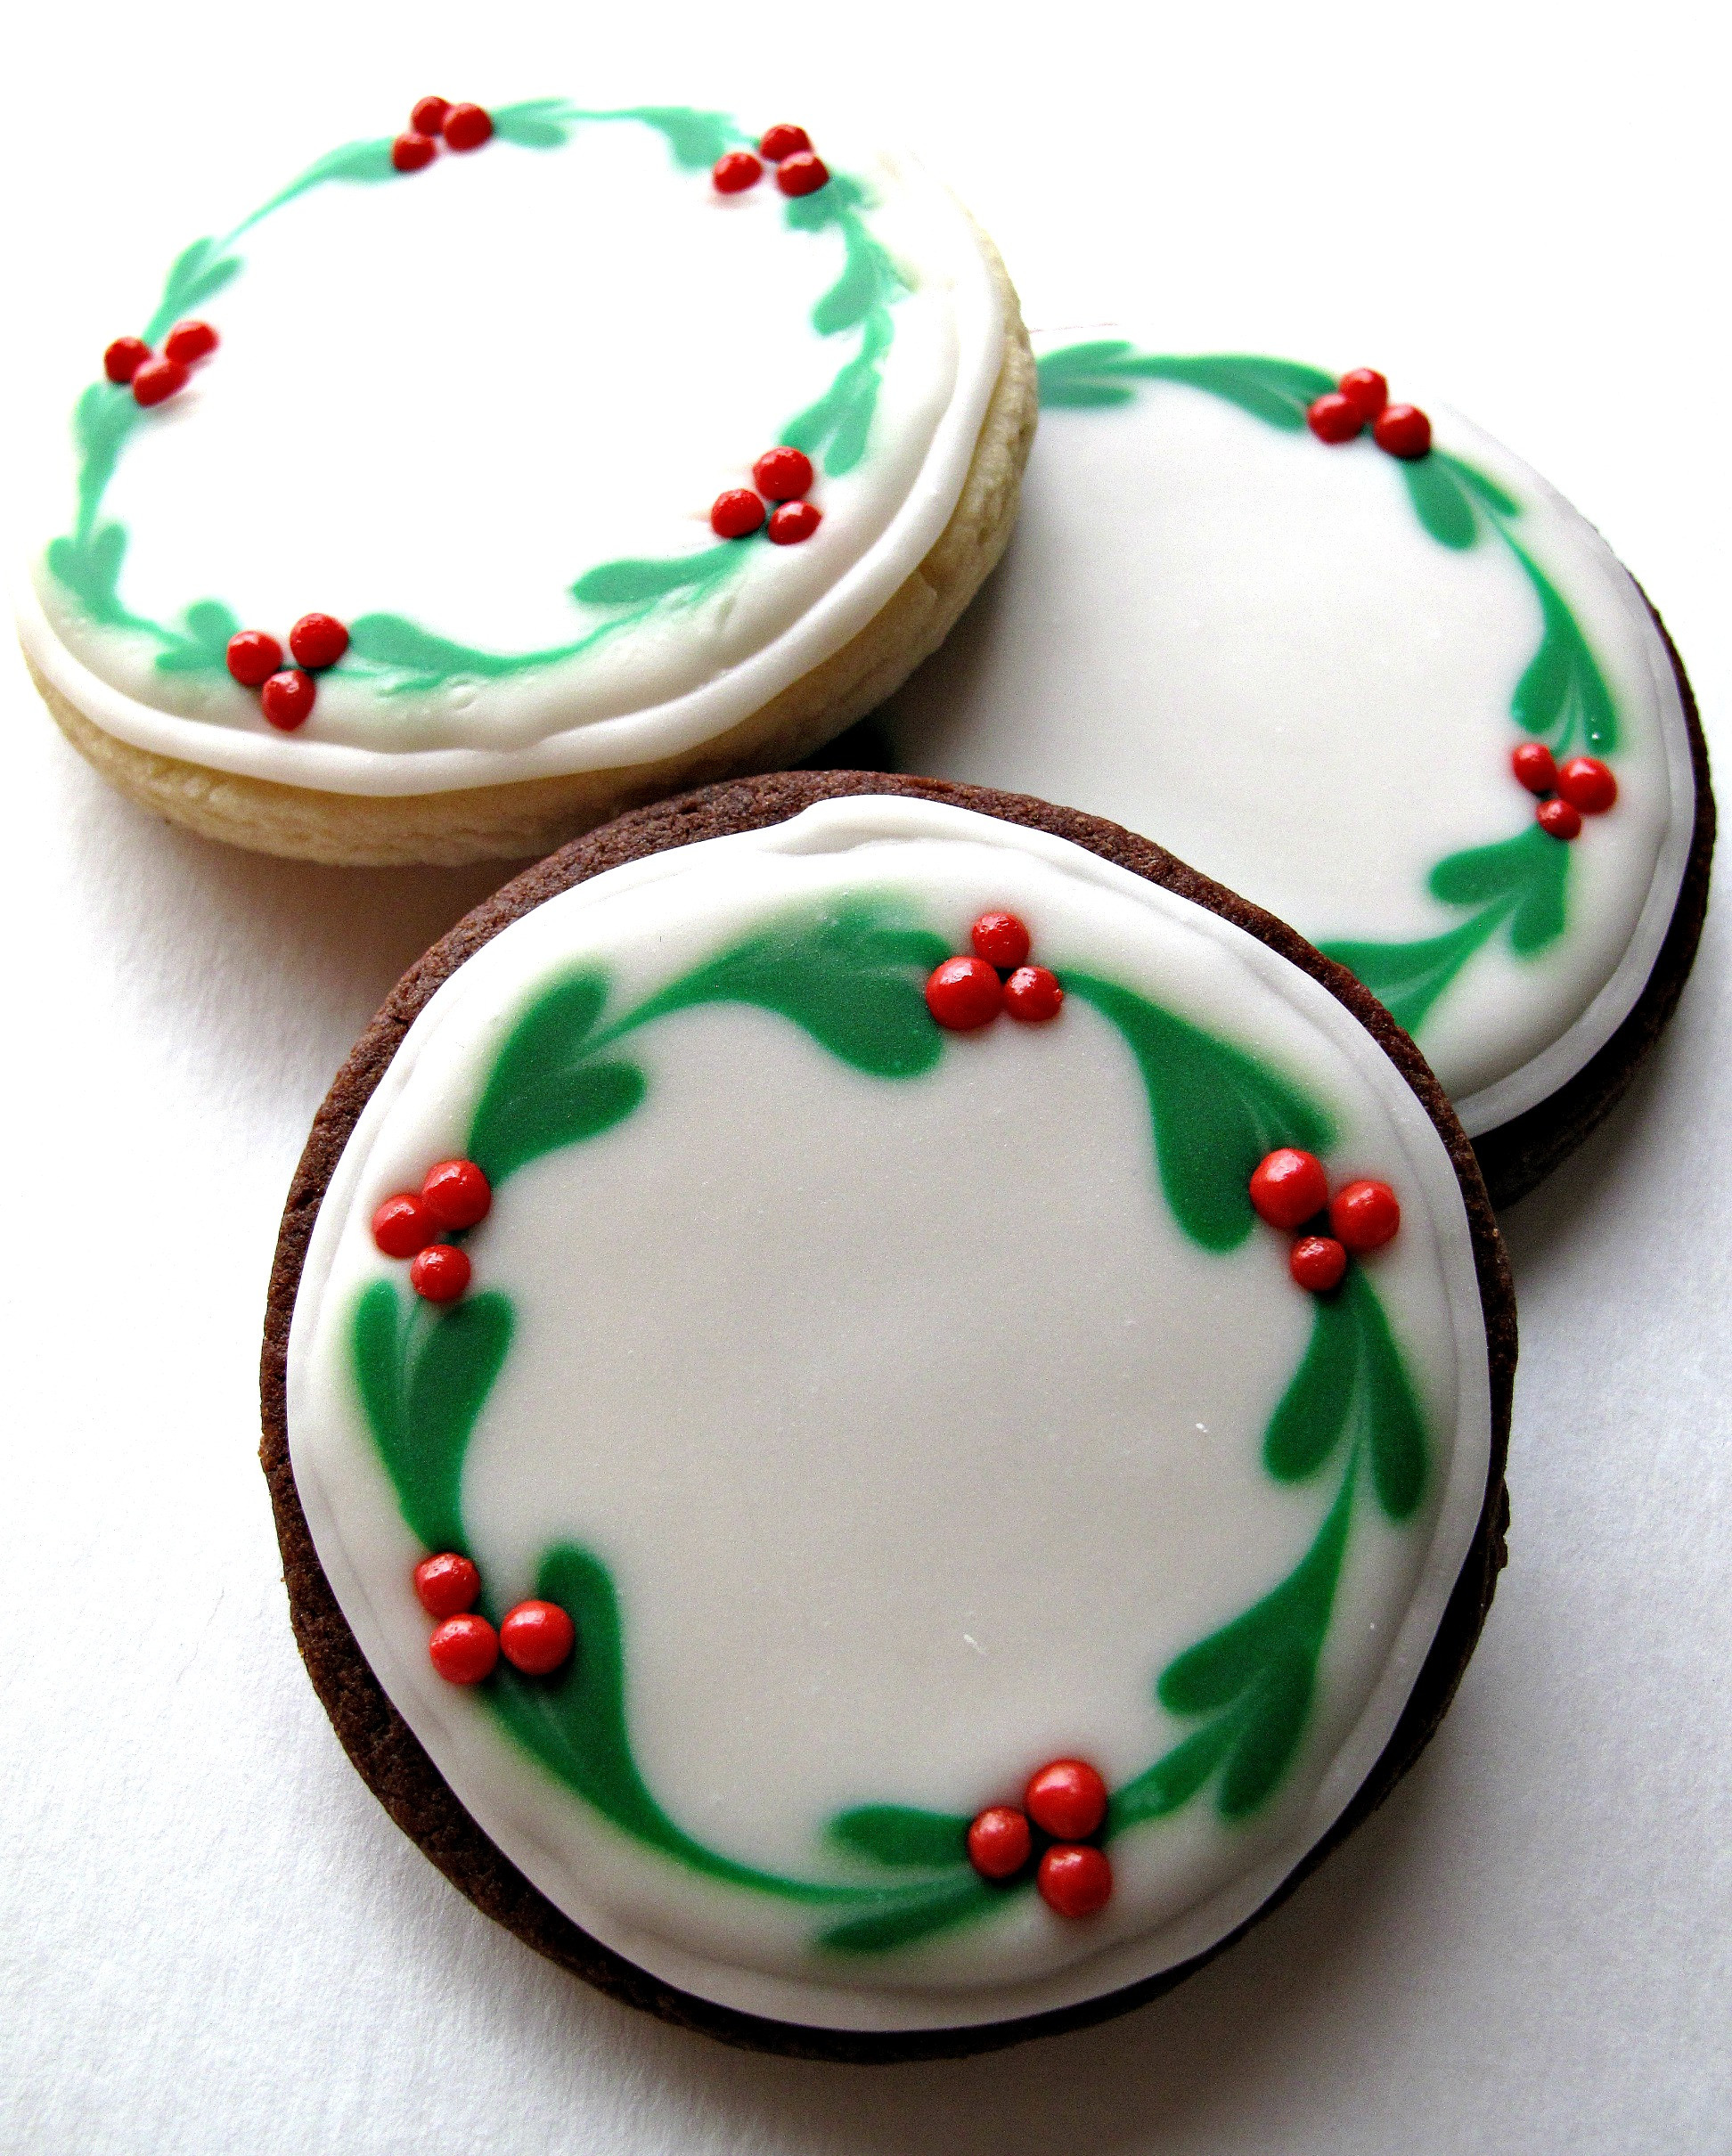 Christmas Cookie Icing Ideas  Chocolate Covered Oreos and Iced Christmas Sugar Cookies